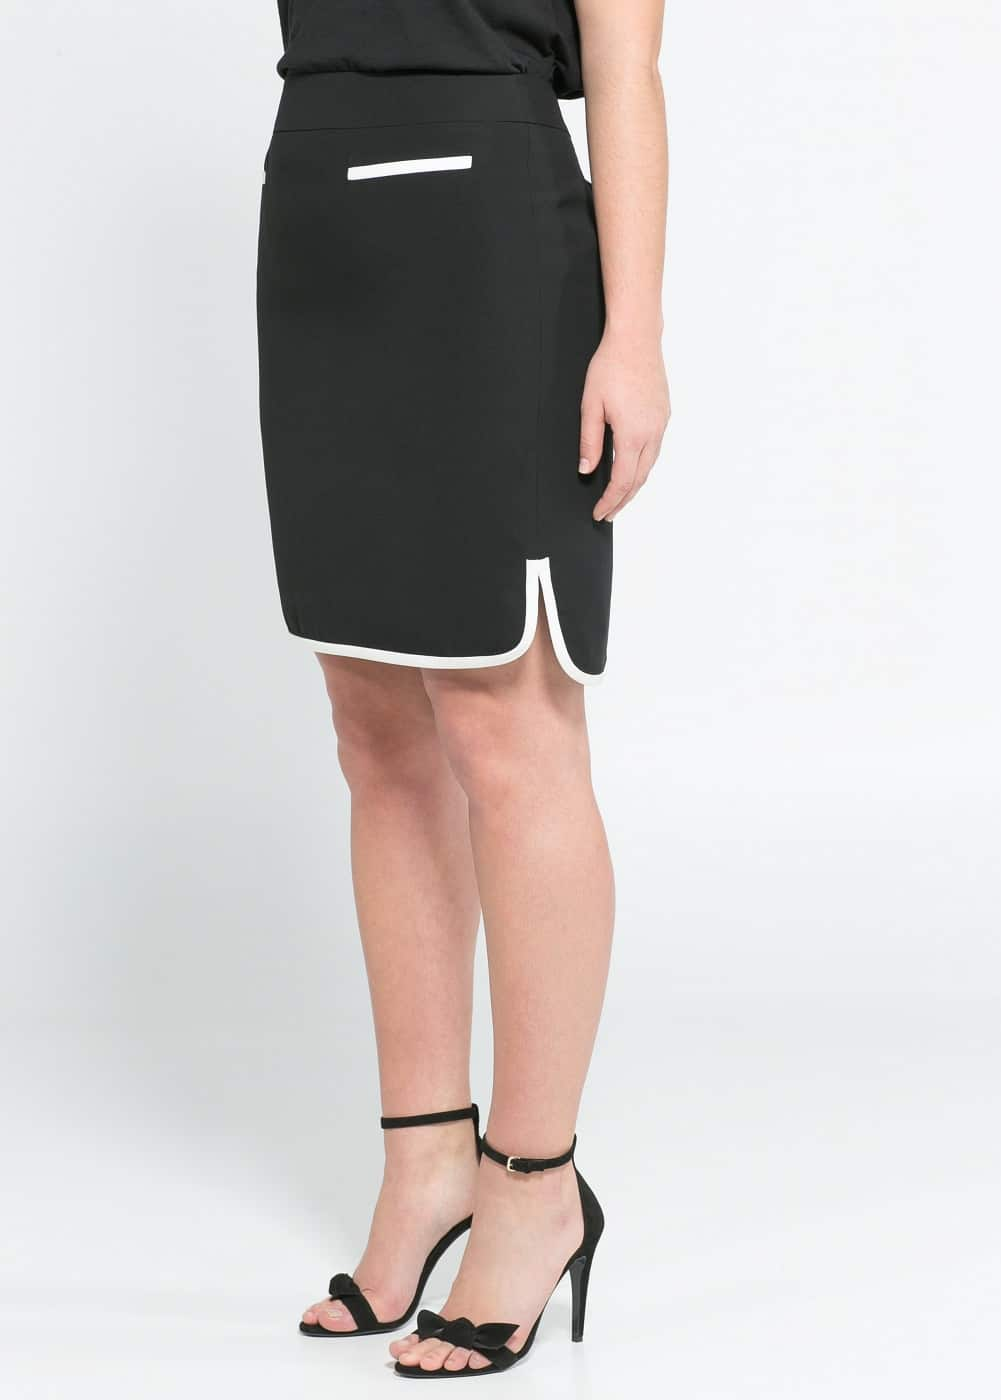 Monochrome suit skirt